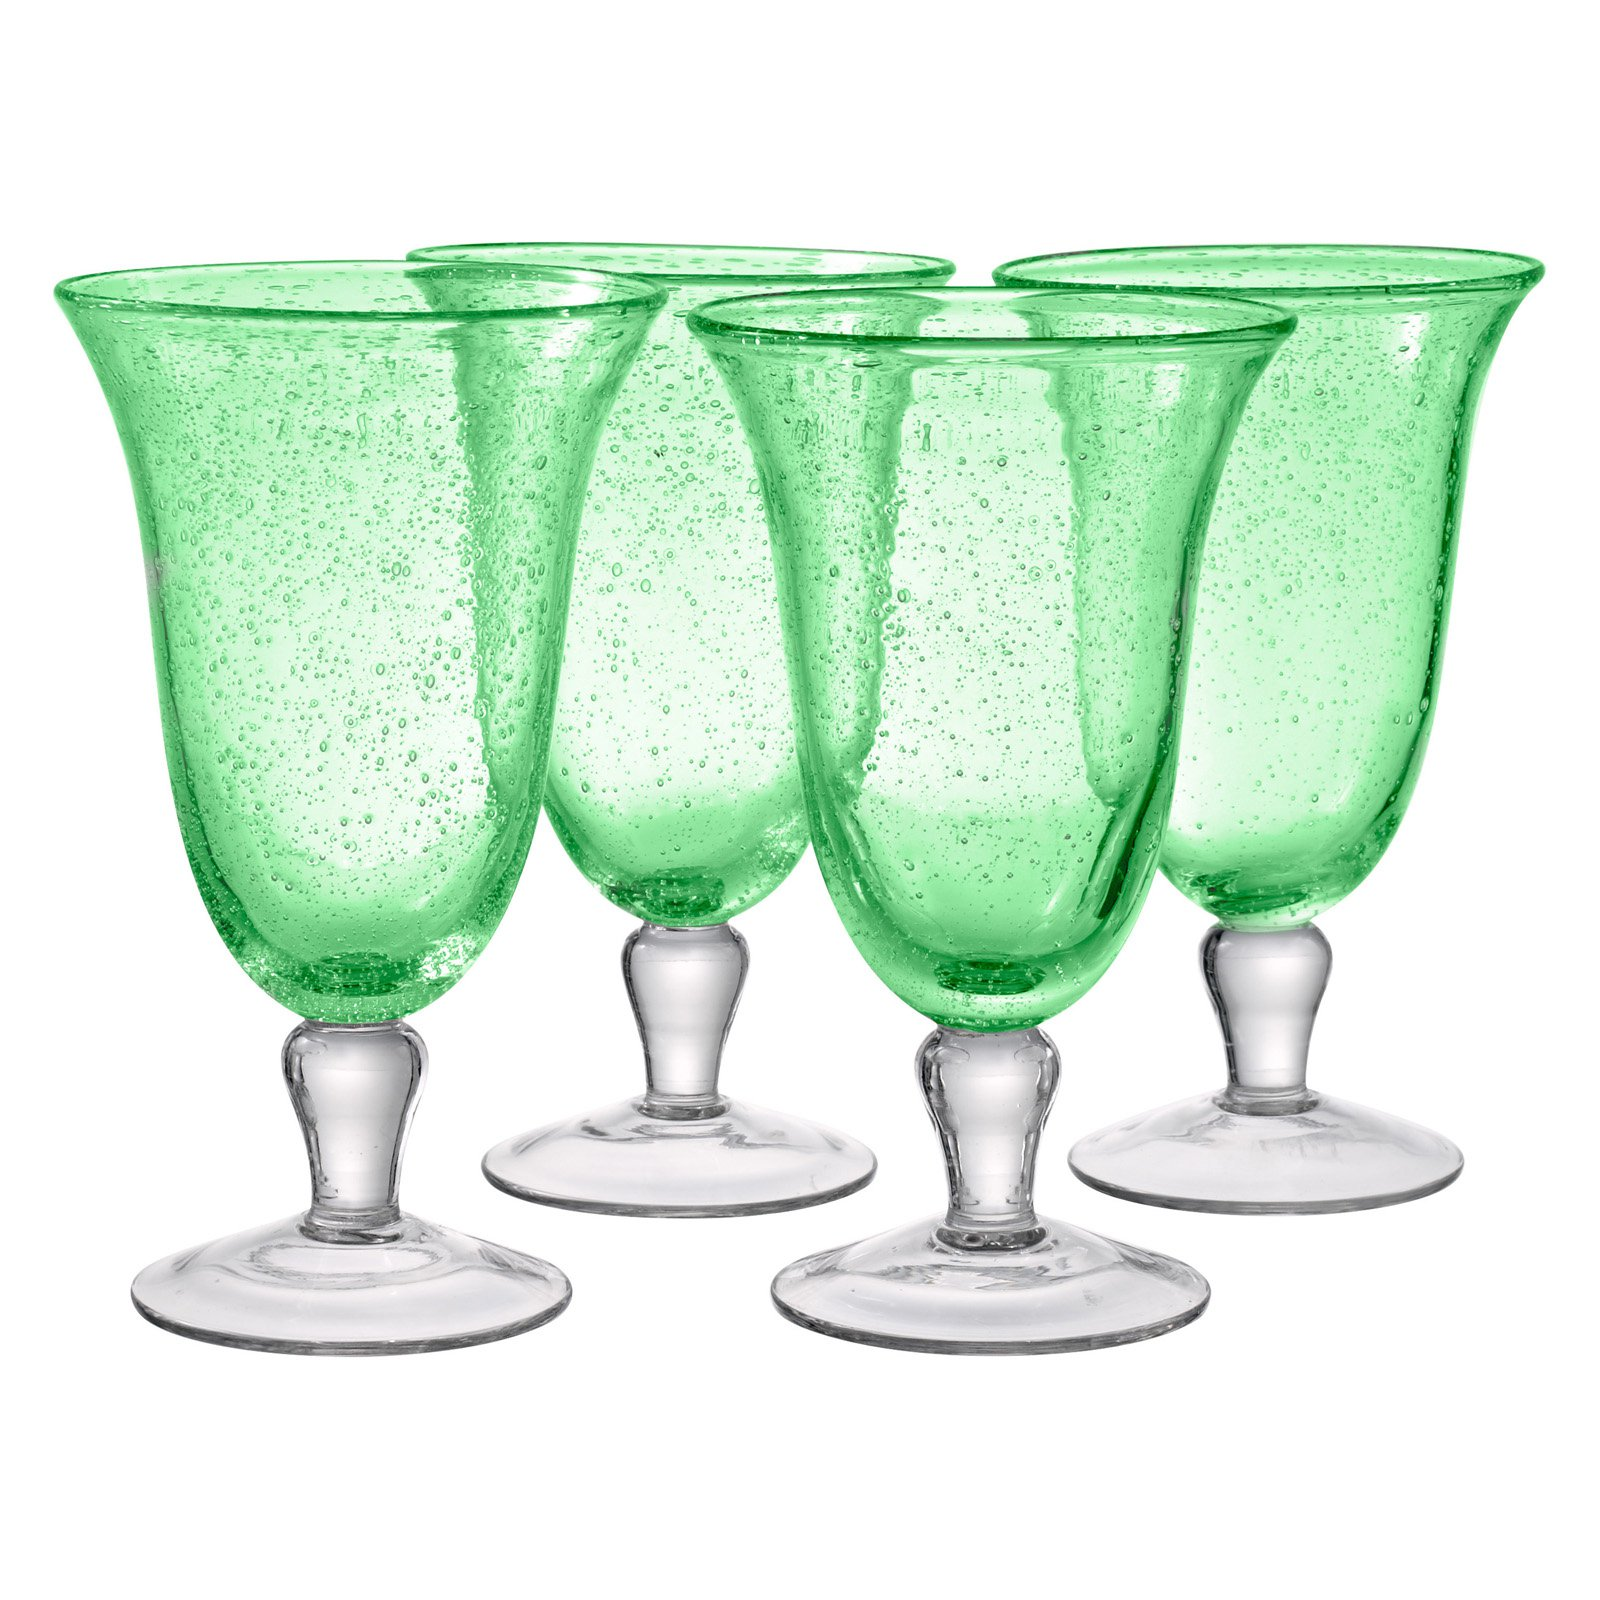 Artland Inc. Iris Light Green Ice Tea Glasses - Set of 4